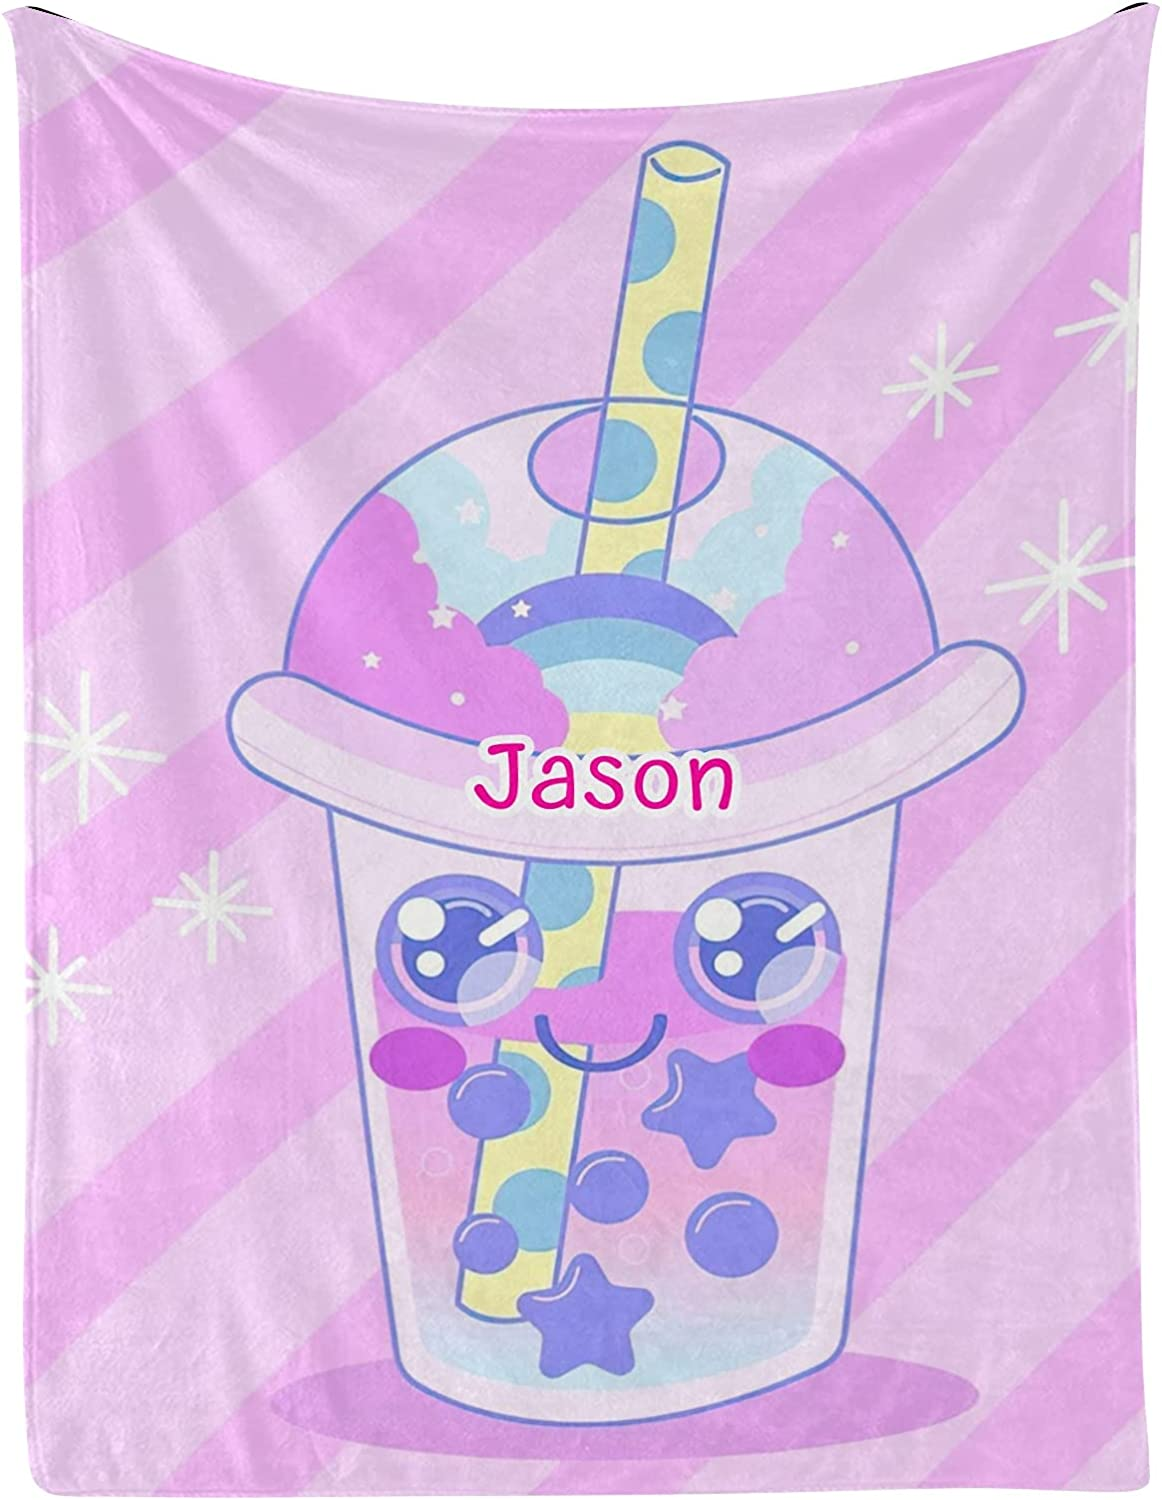 Cup Bubble Tea Stars New Free Shipping Personalized Name 30x40 Blankets with Wholesale Baby